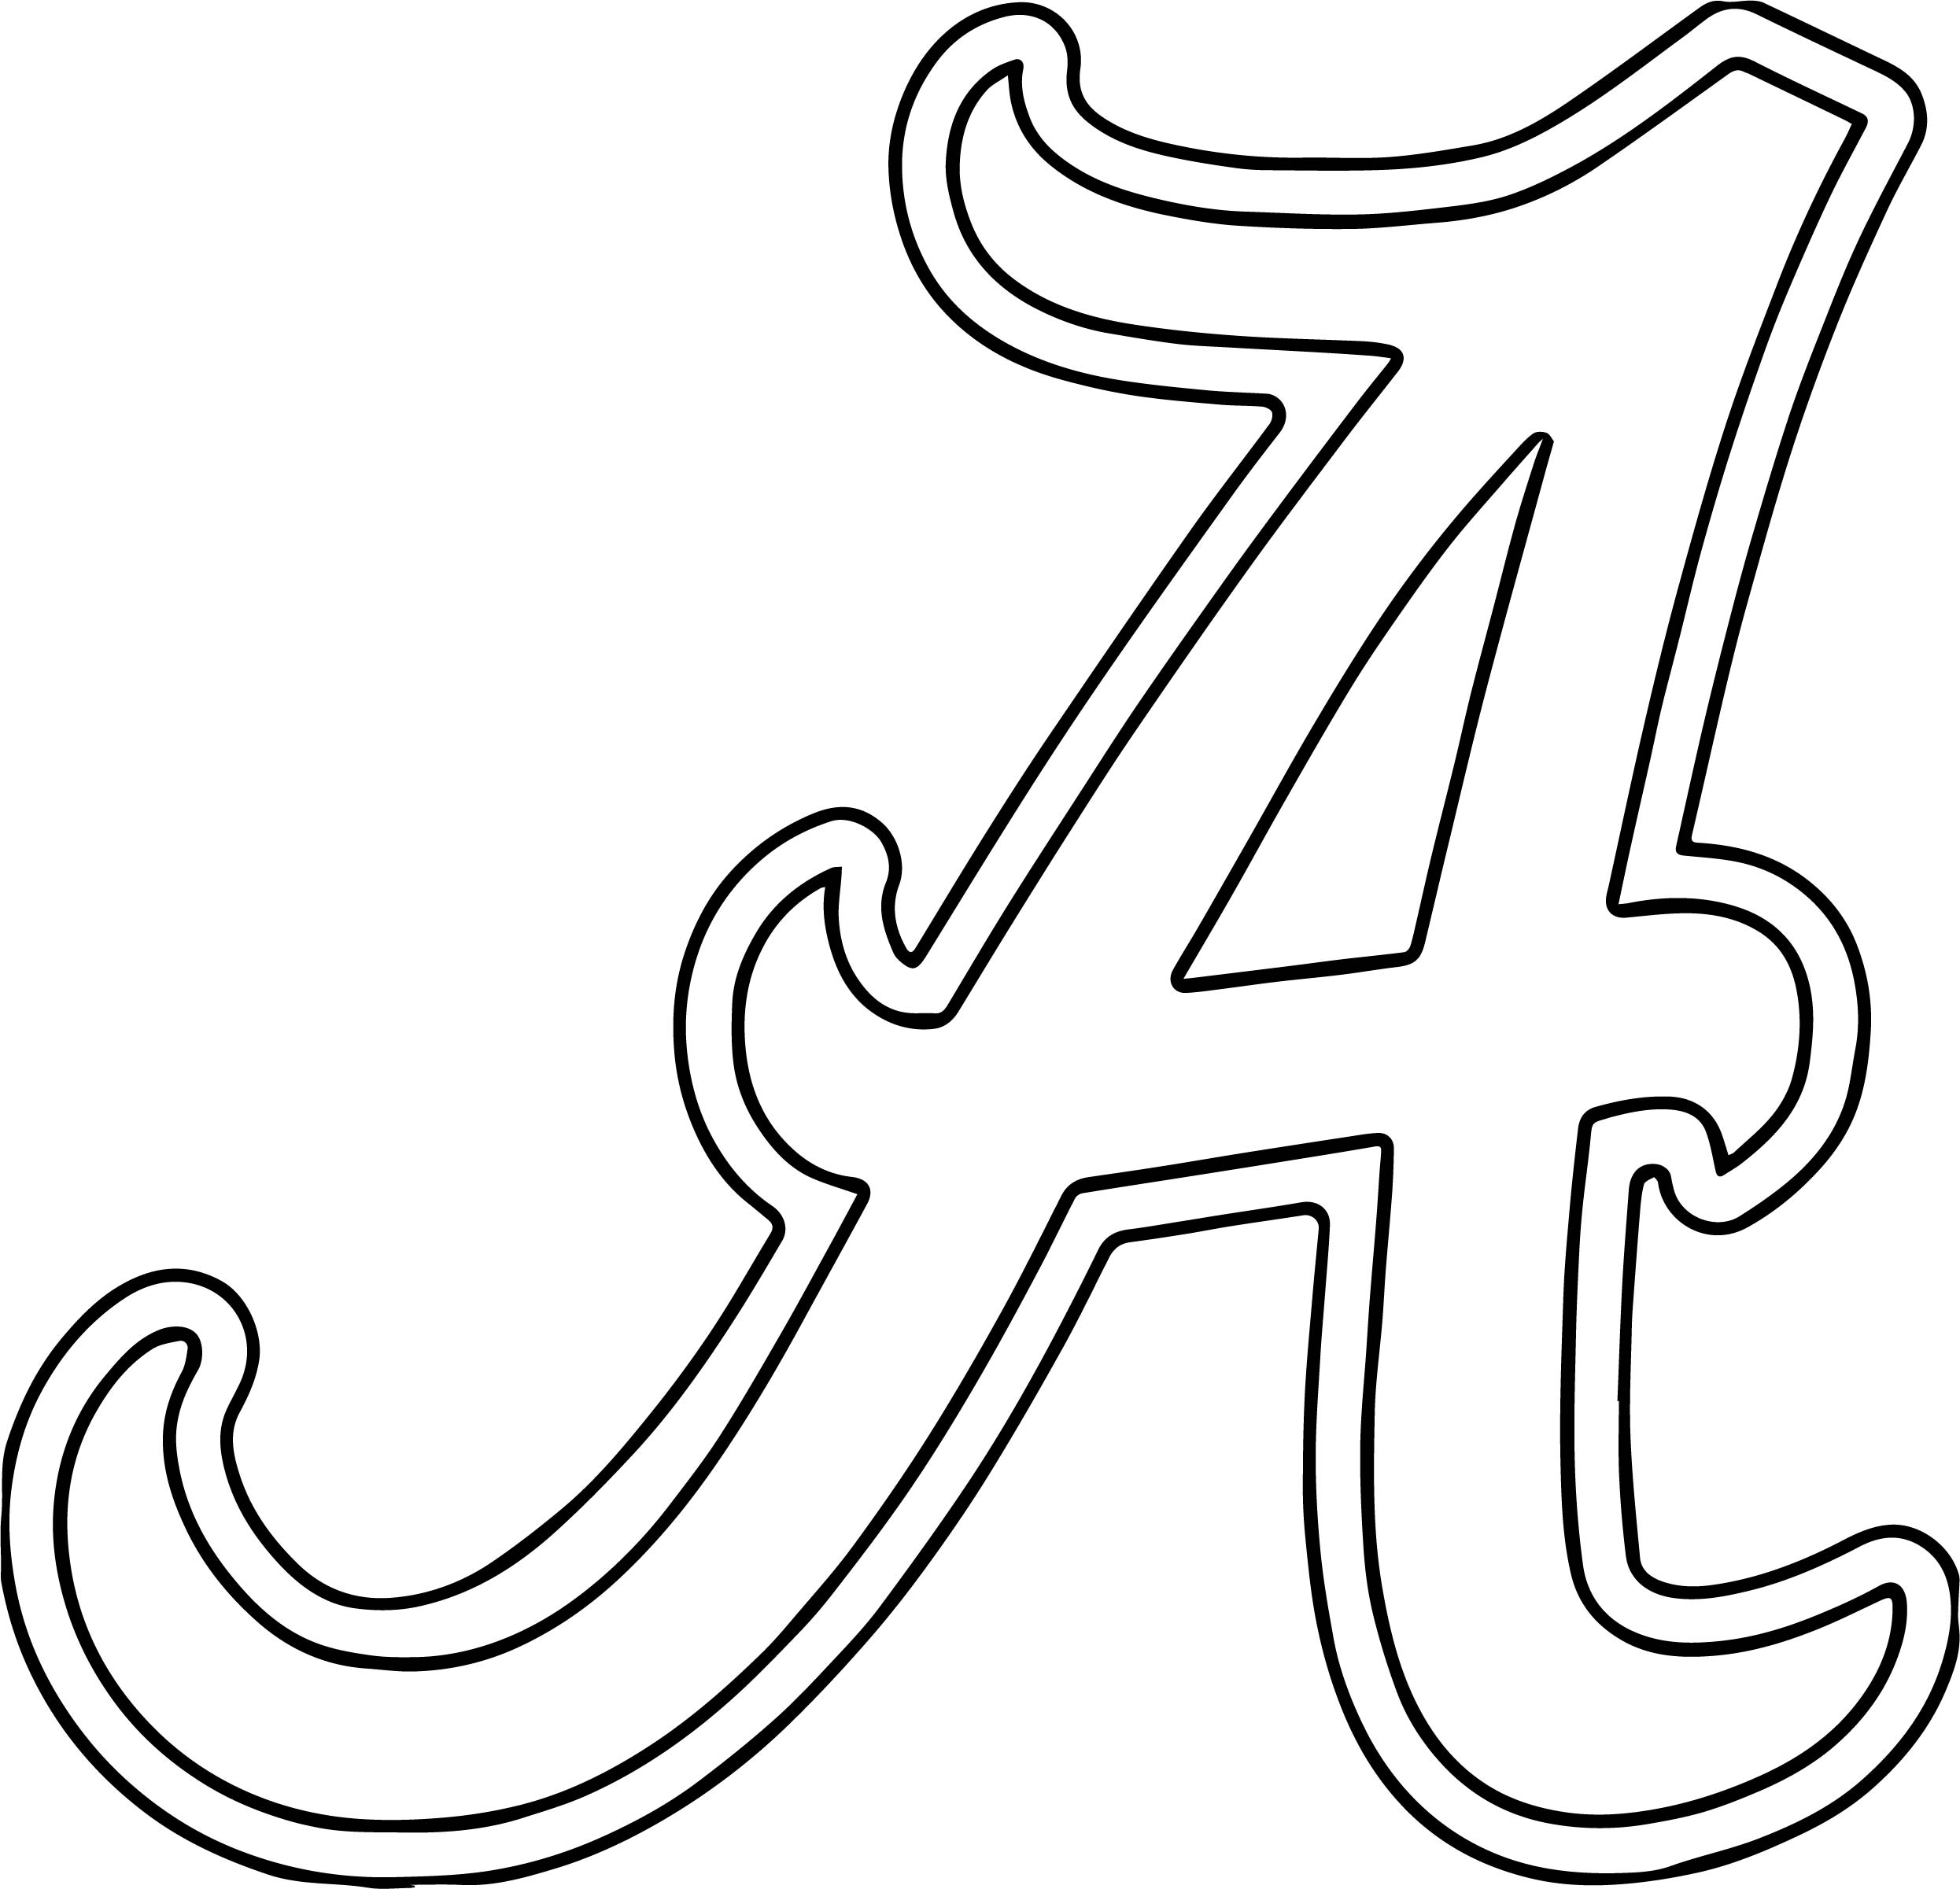 Alabama University Of Alabama A Text Coloring Page also with alabama football coloring pages wecoloringpage on free alabama football coloring pages including university of alabama football coloring pages university coloring on free alabama football coloring pages moreover auburn tigers college football coloring pages 01 800 600 on free alabama football coloring pages including alabama a template alabama football a text outline coloring page on free alabama football coloring pages